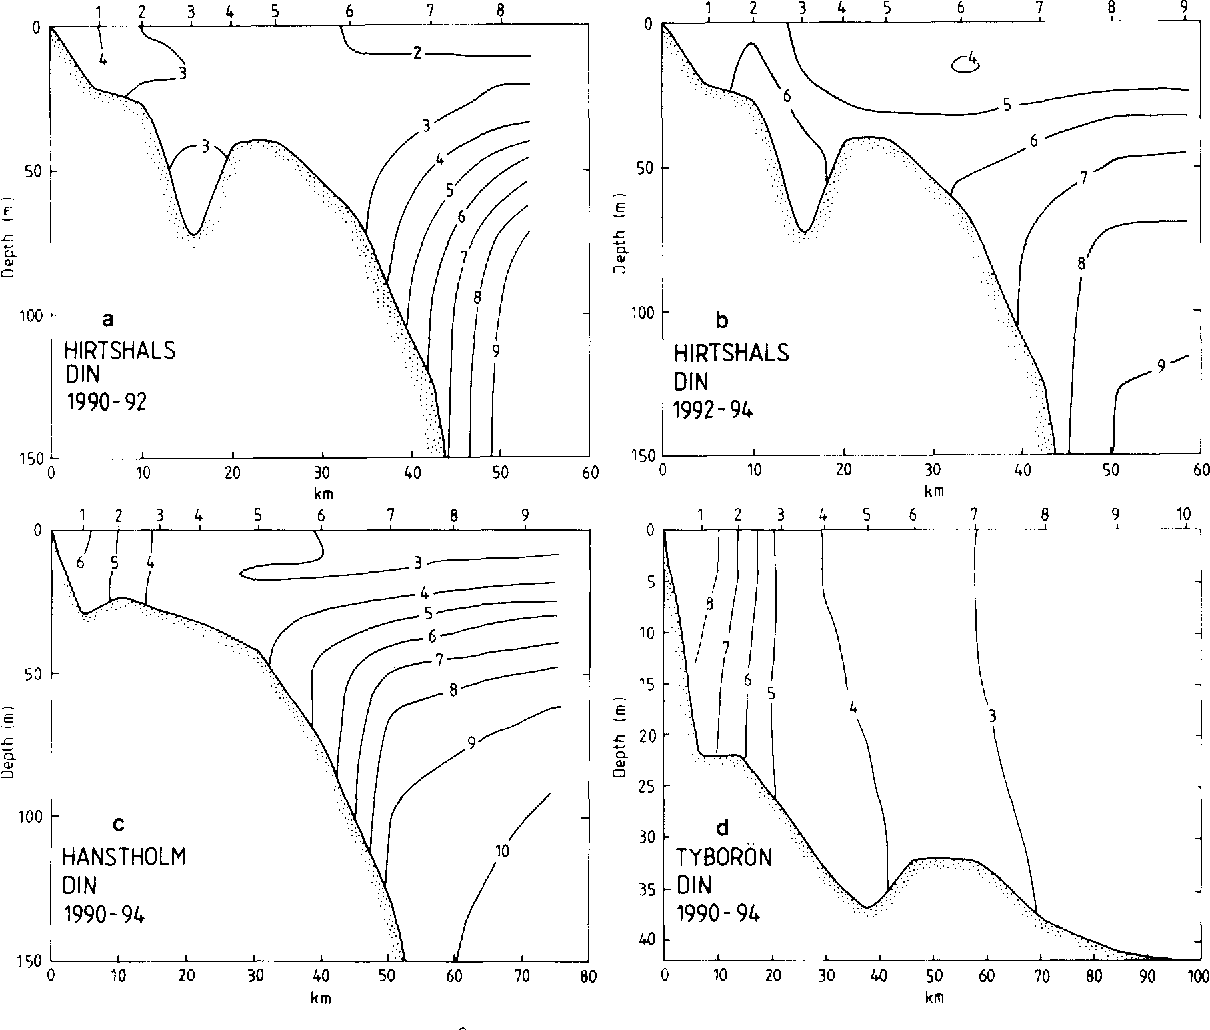 Fig. 4. Average DIN concentrations (mmol.m 3) at the cross-sections at Hirtshals (a, b; 20 transects), Hanstholm (c; 24 transects) and Tybor6n (d; 20 transects). Compare legend of Fig. 2.